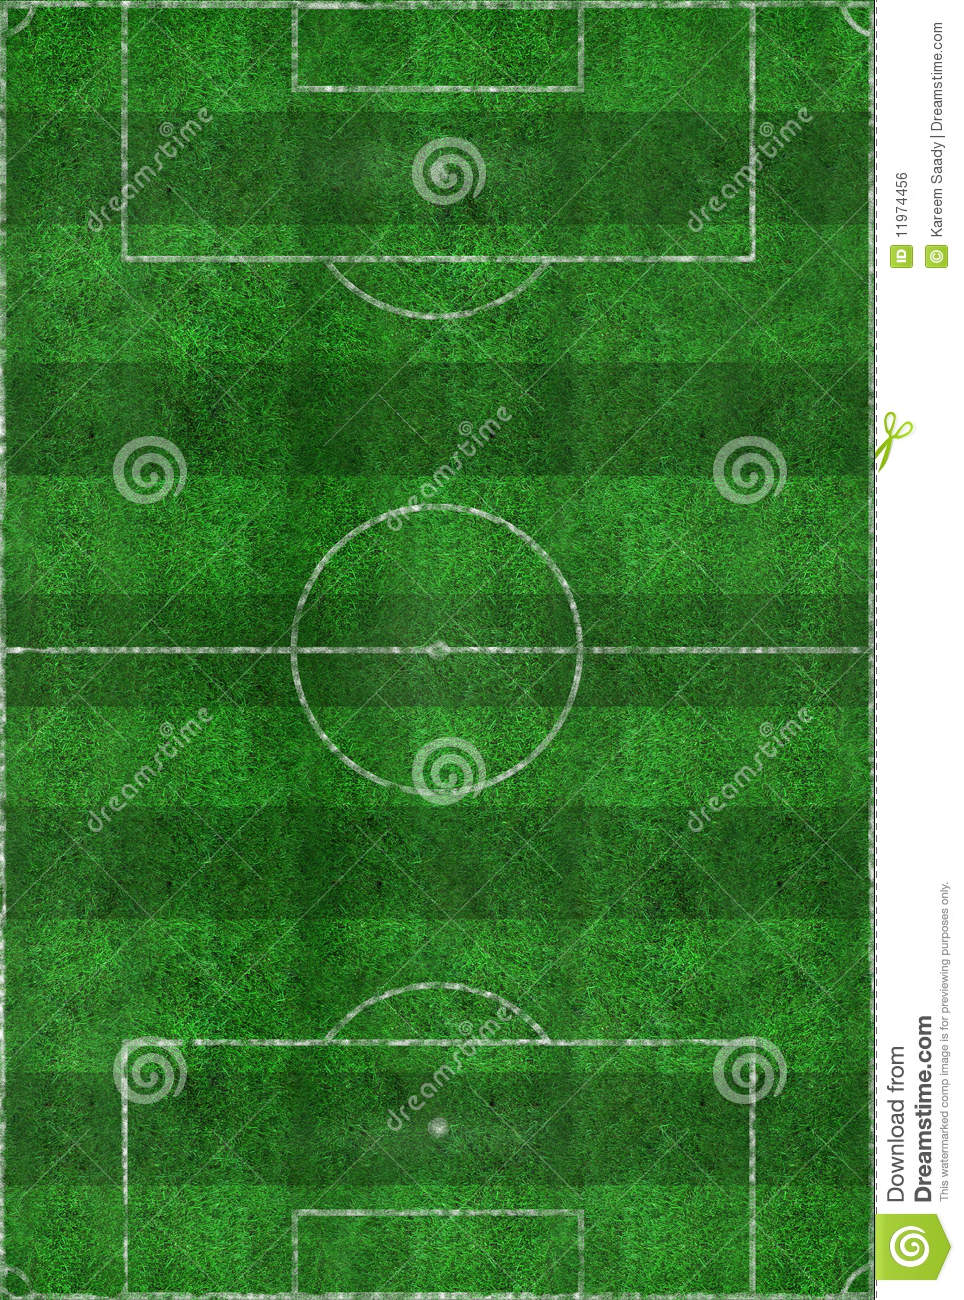 Soccer Field Layout Royalty Free Stock Image Image 11974456